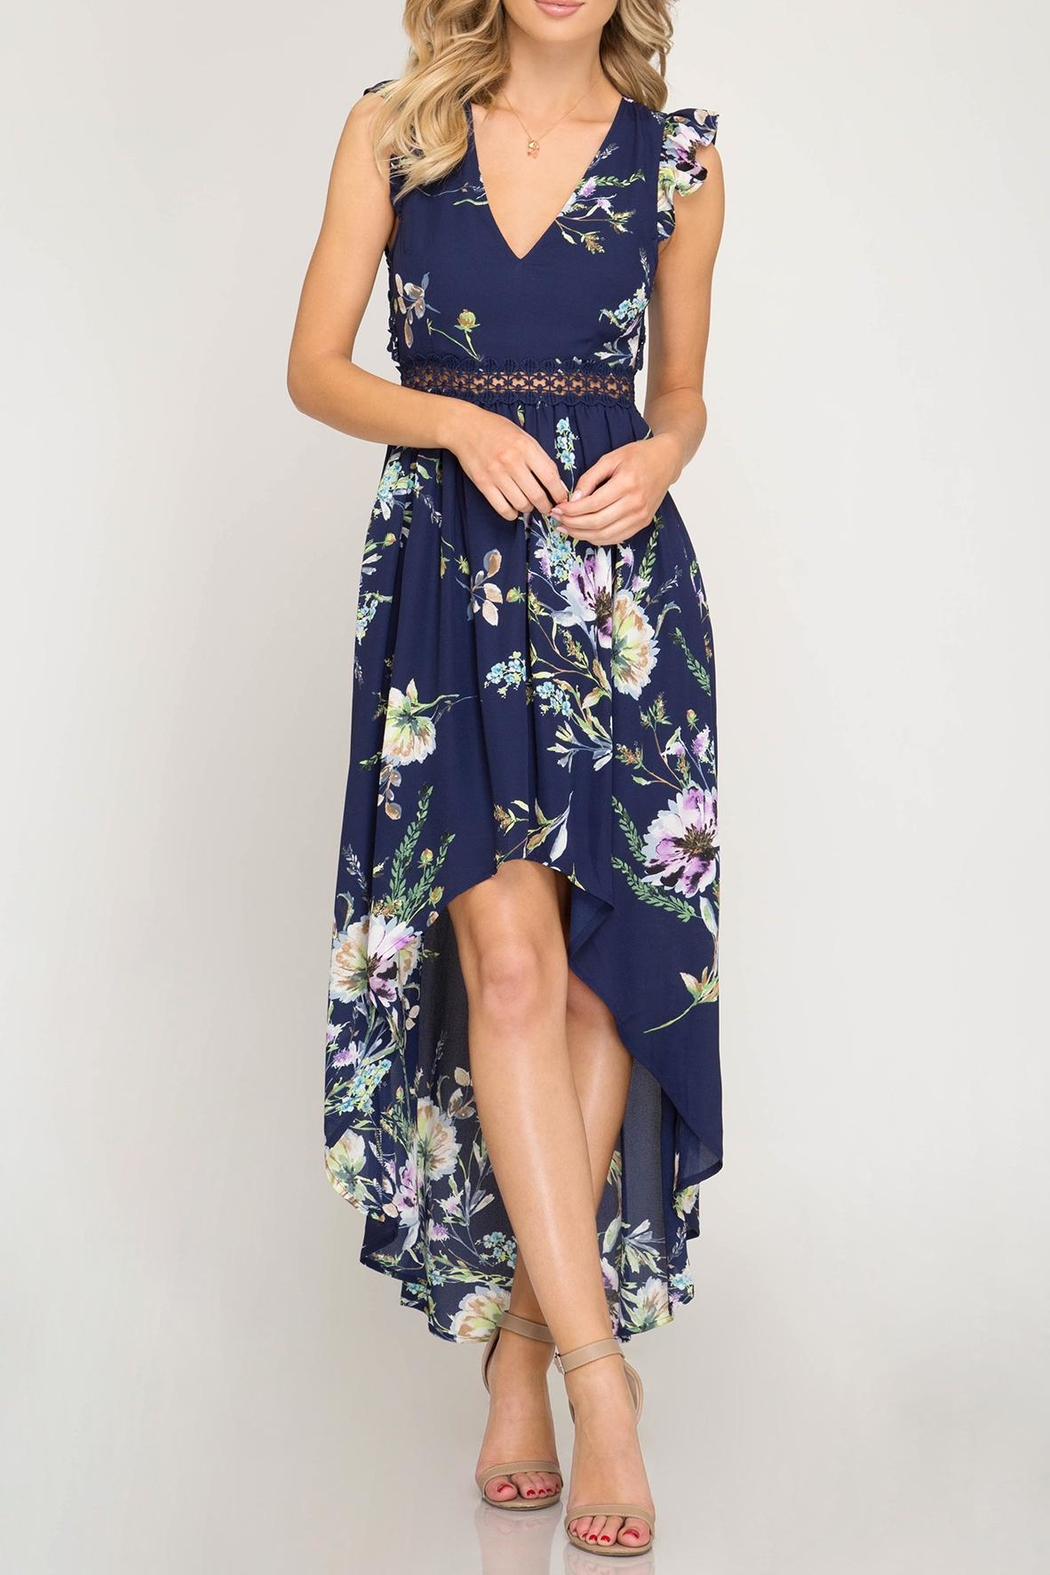 She + Sky Open-Back Floral Maxi - Main Image